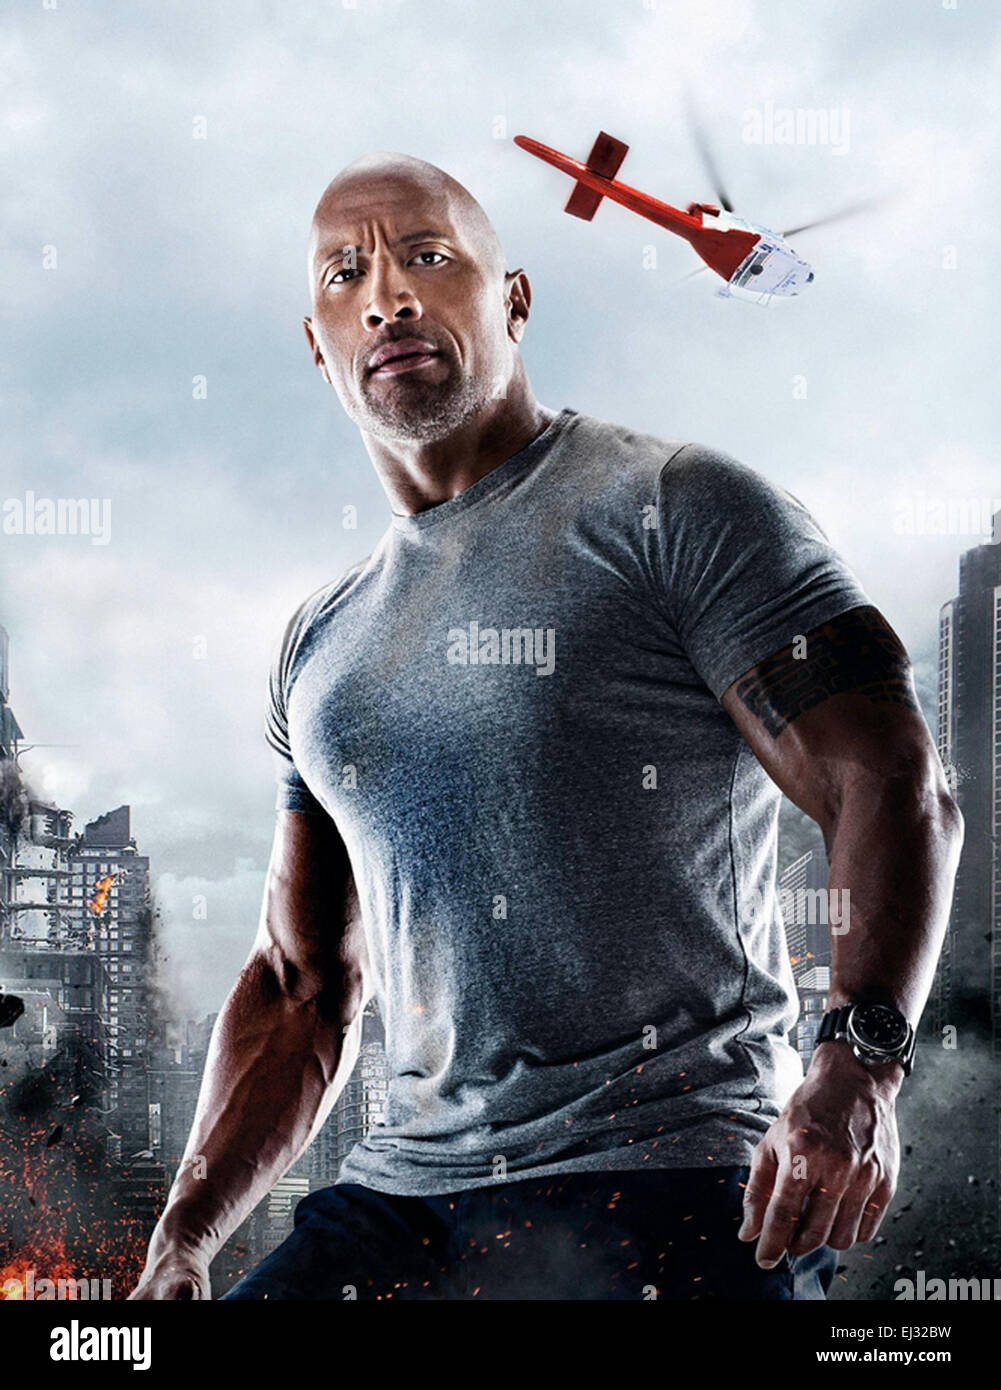 San Andreas 2015 Warner Bros Film With The Rock Stock Photo Alamy